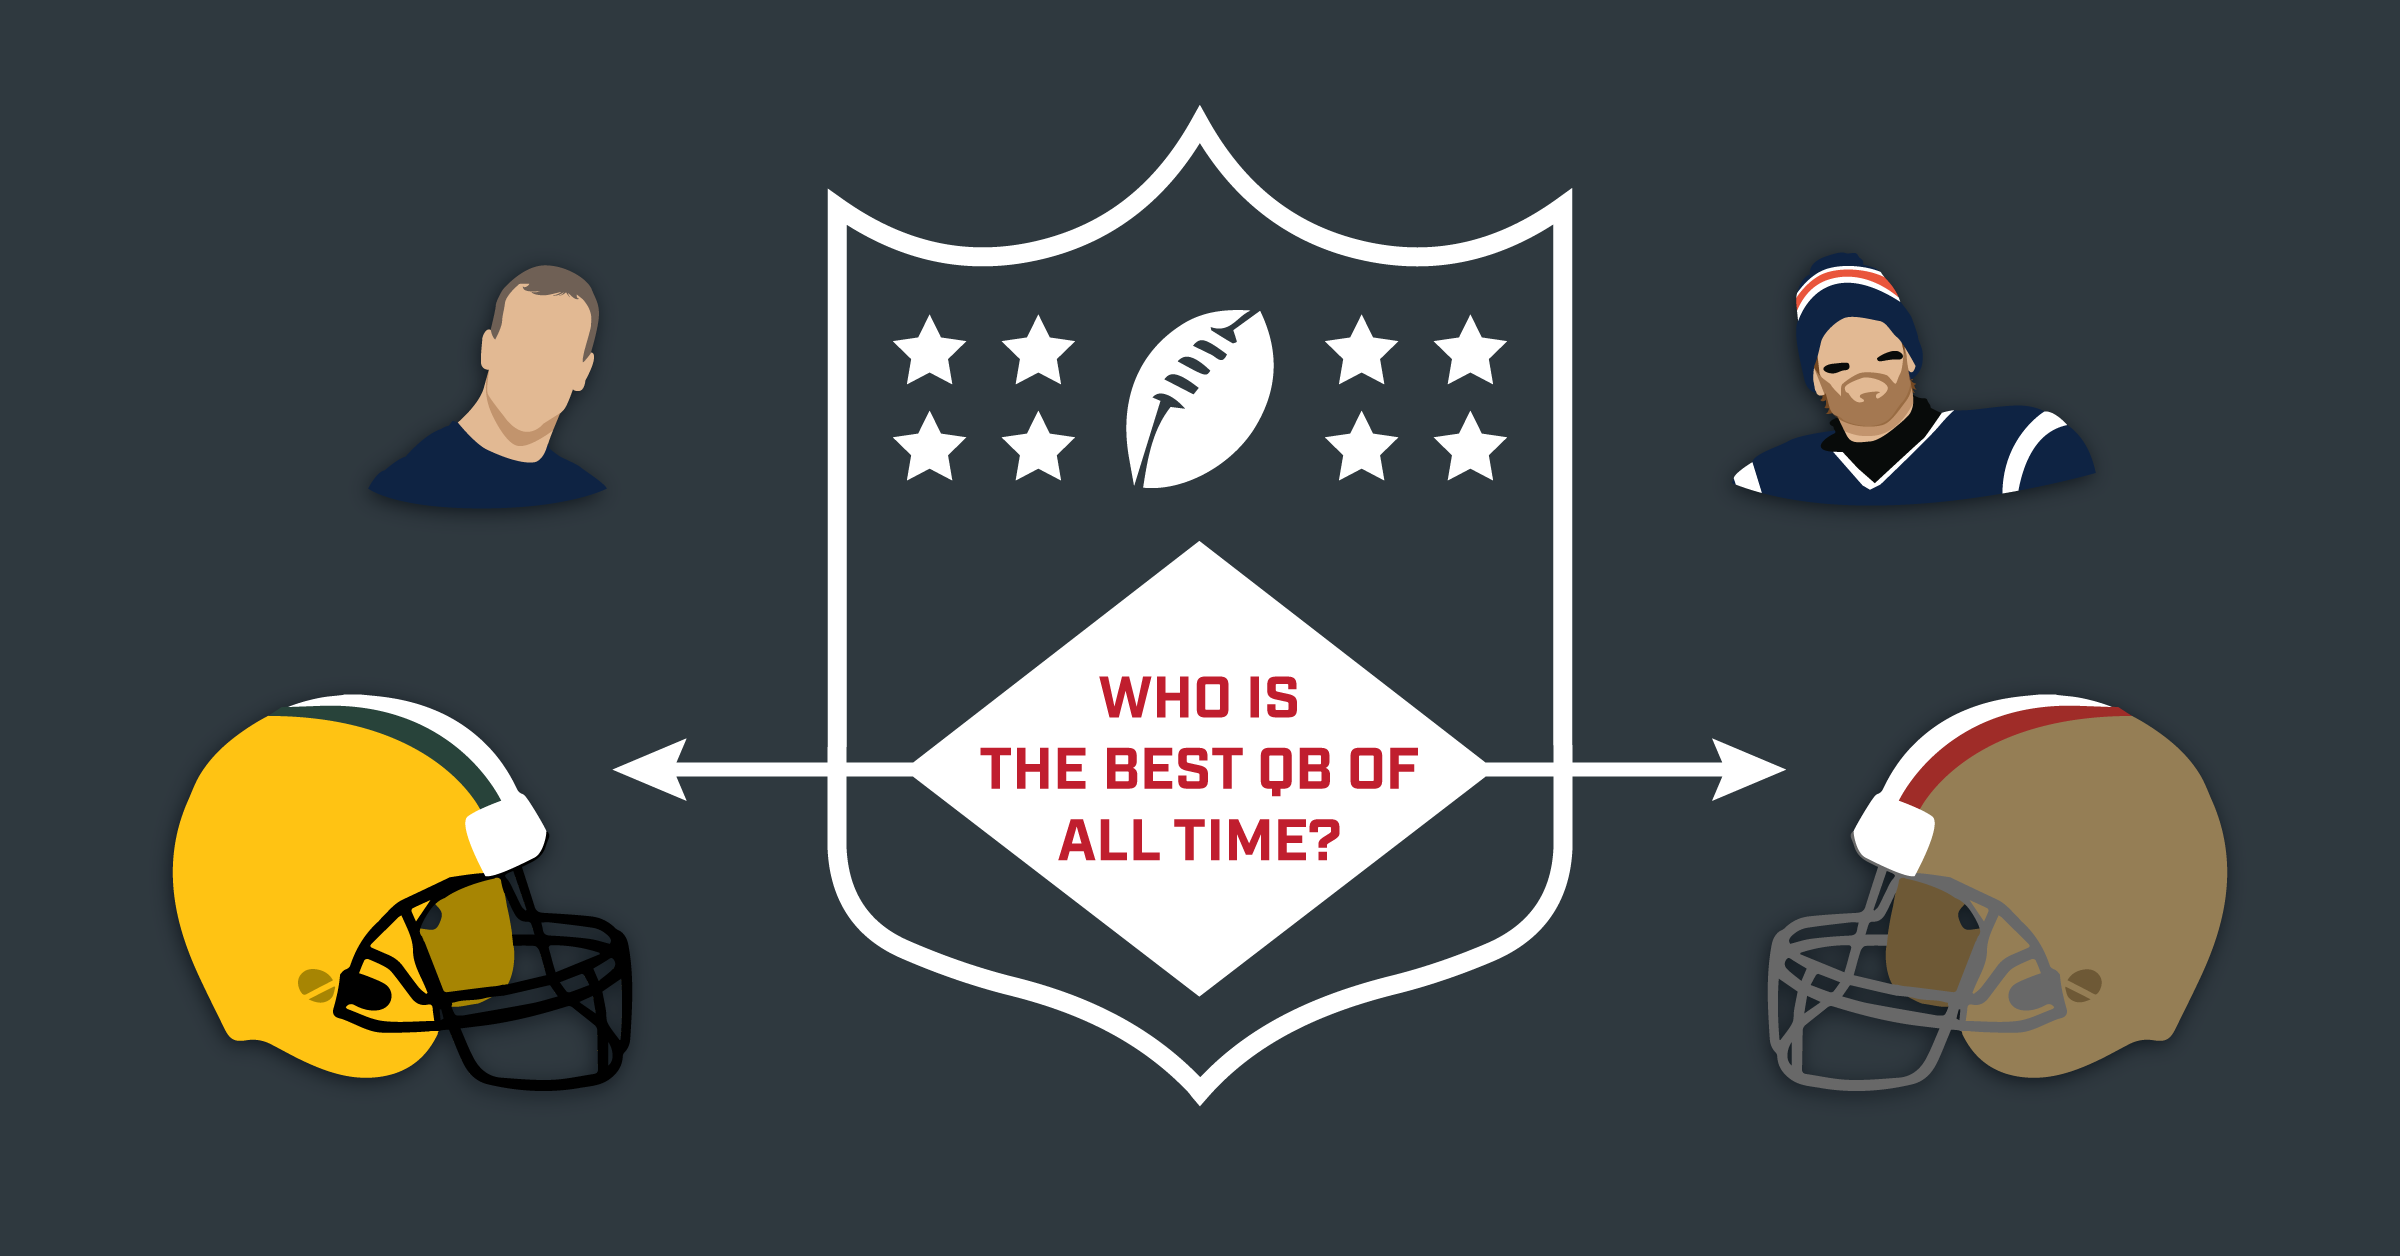 Who is the greatest QB?